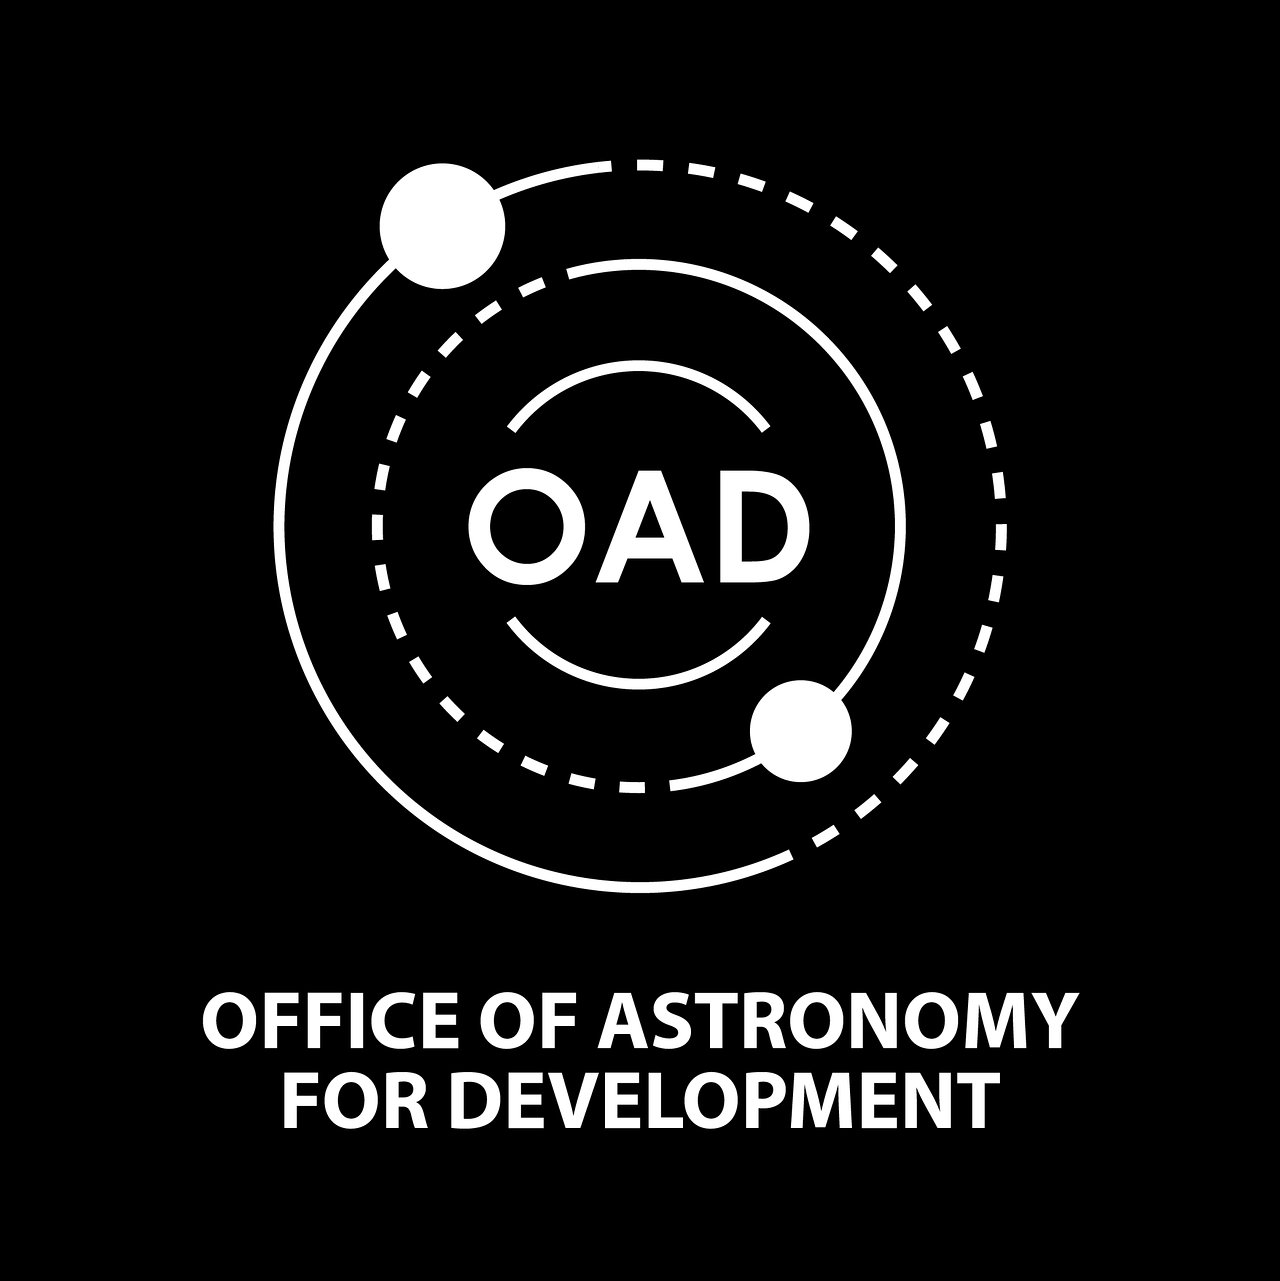 Logo of OAD (White, Black Background)